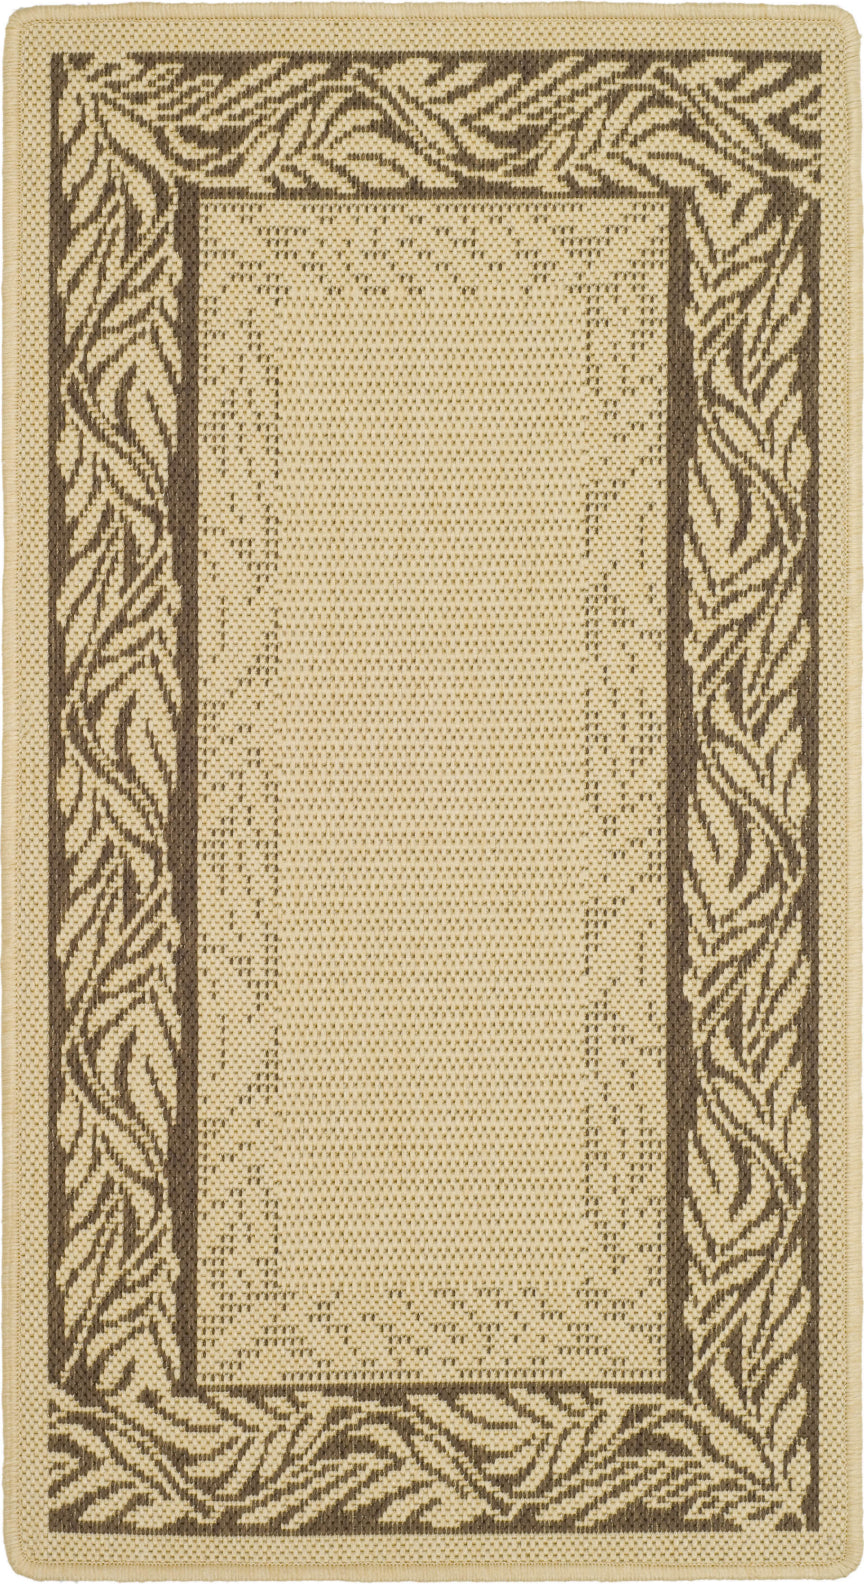 Safavieh Courtyard CY1551 Natural/Brown Area Rug main image